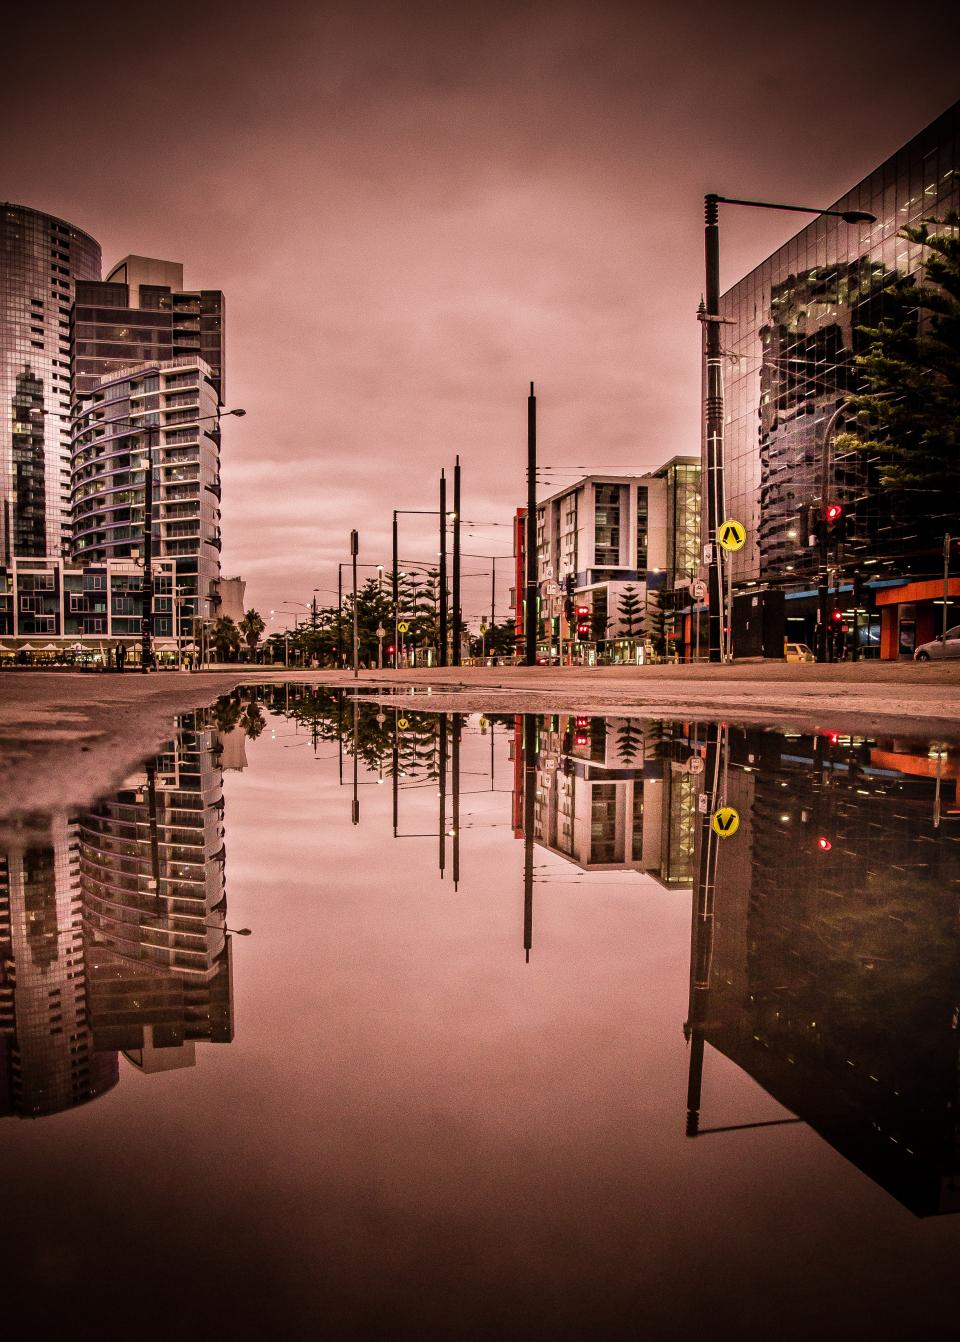 urban city reflection building establishment architecture clouds sky street road apartment office traffic light post